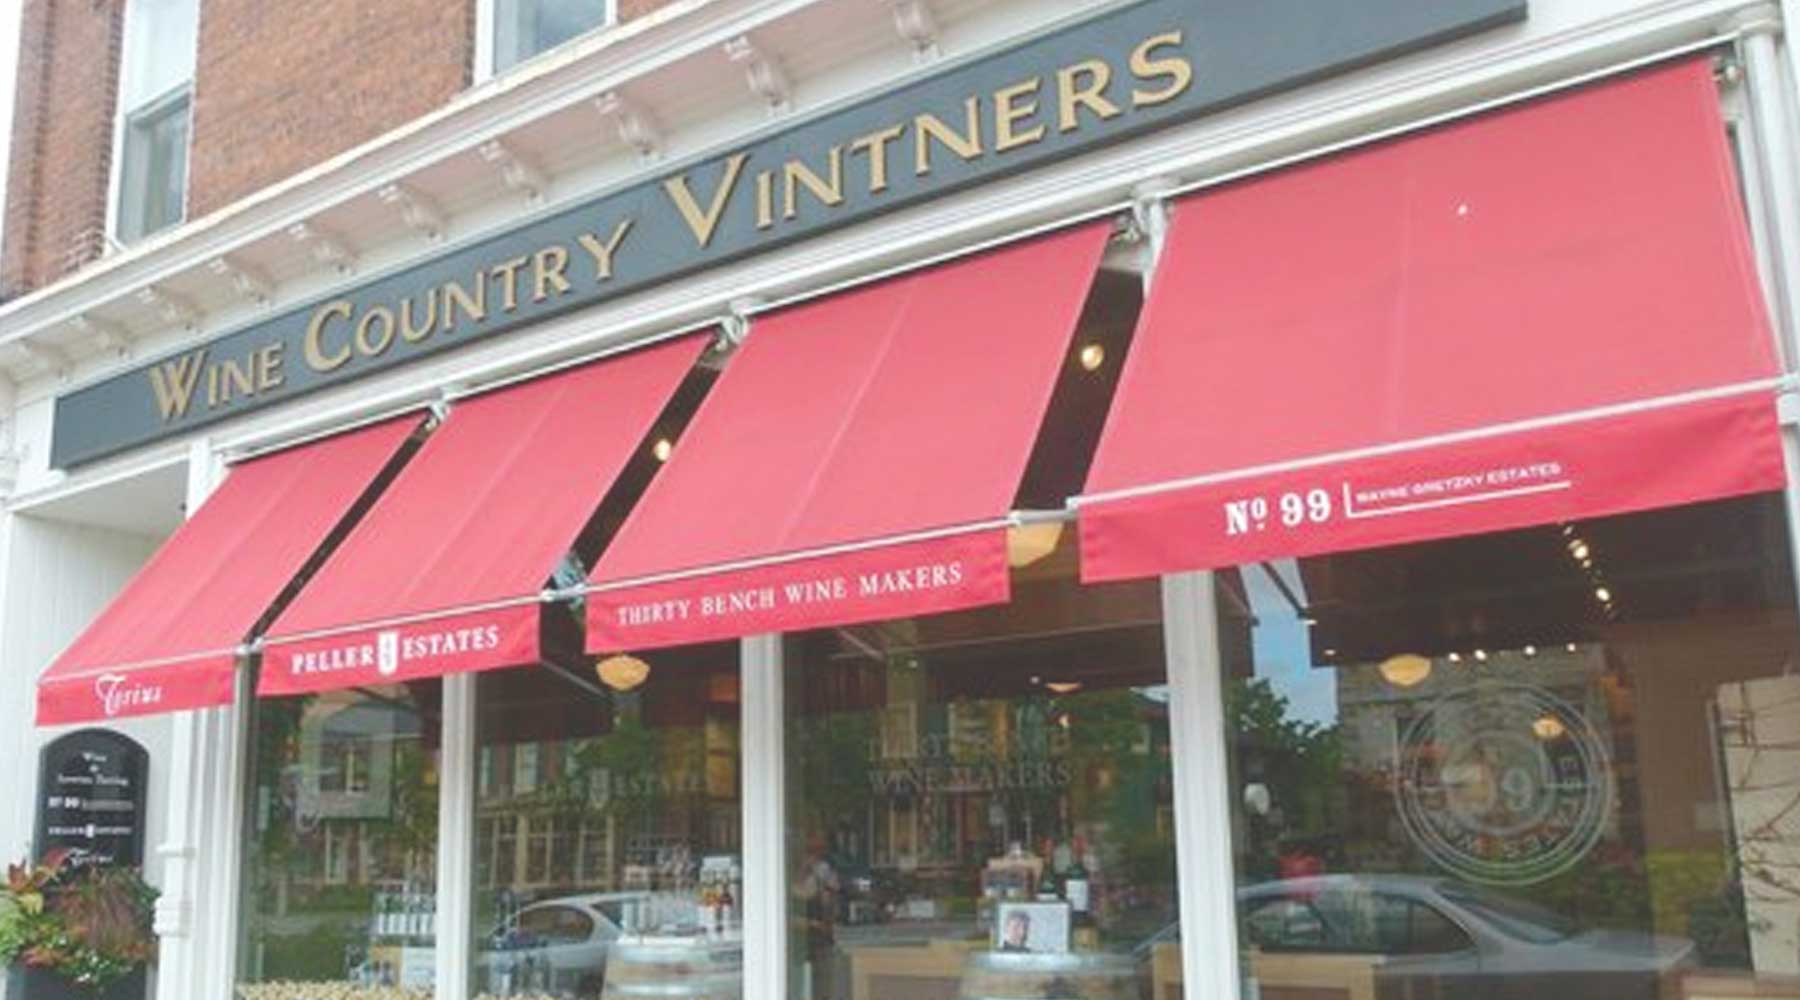 Wine Country Vintners | Just Wine